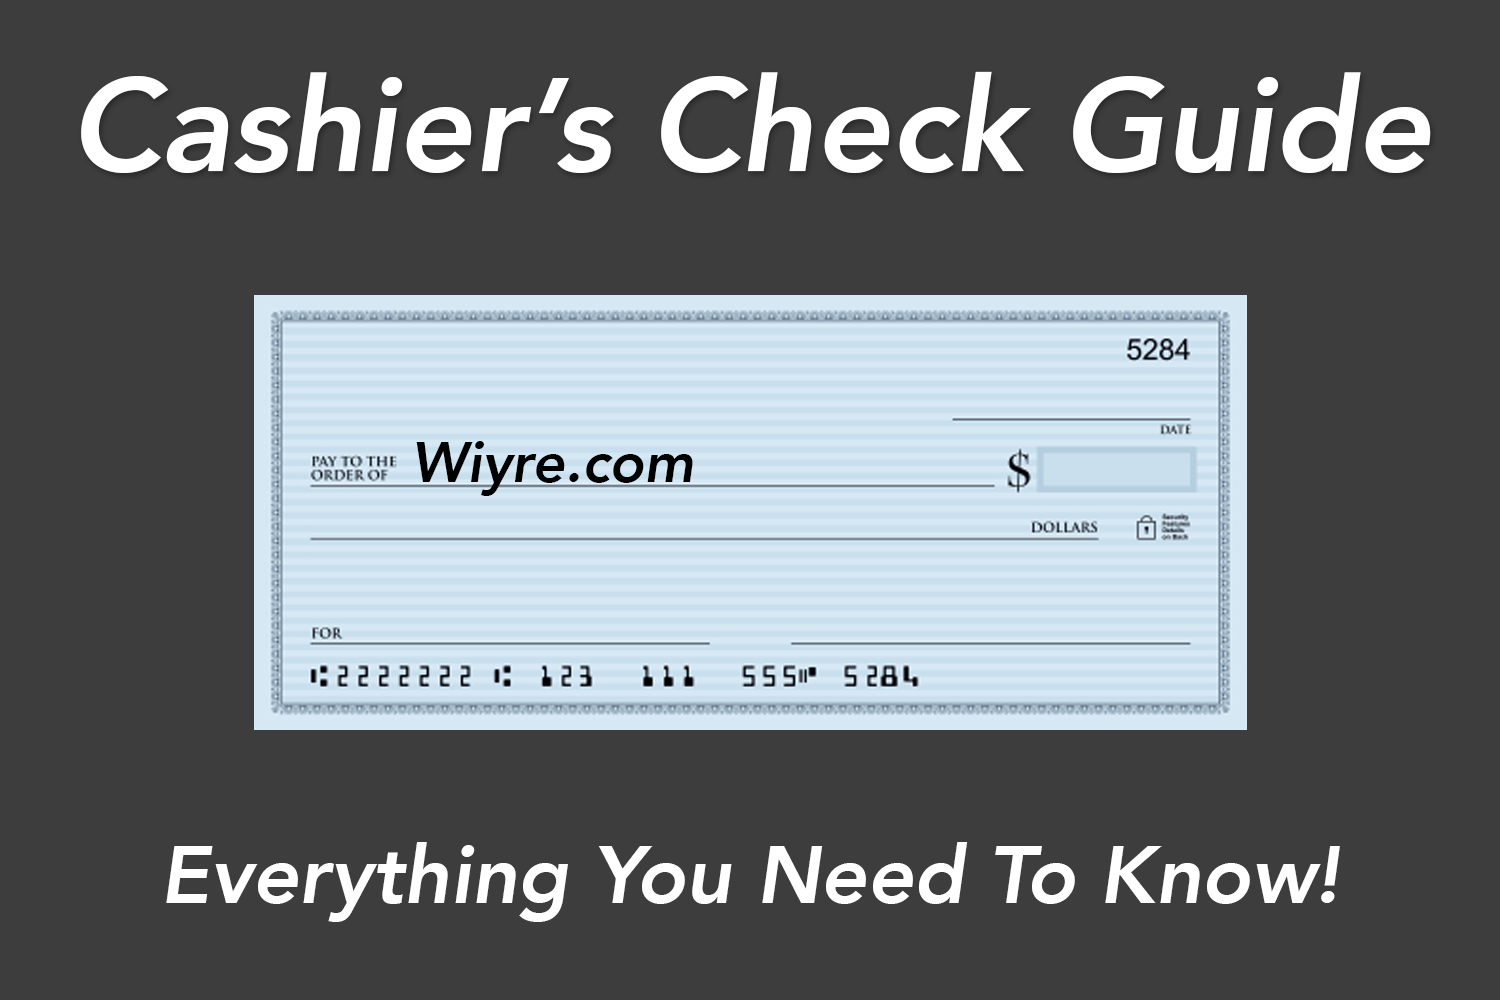 Cashiers Check Png - Cashier's Check Guide: What It's Used For, How to Get One | Wiyre